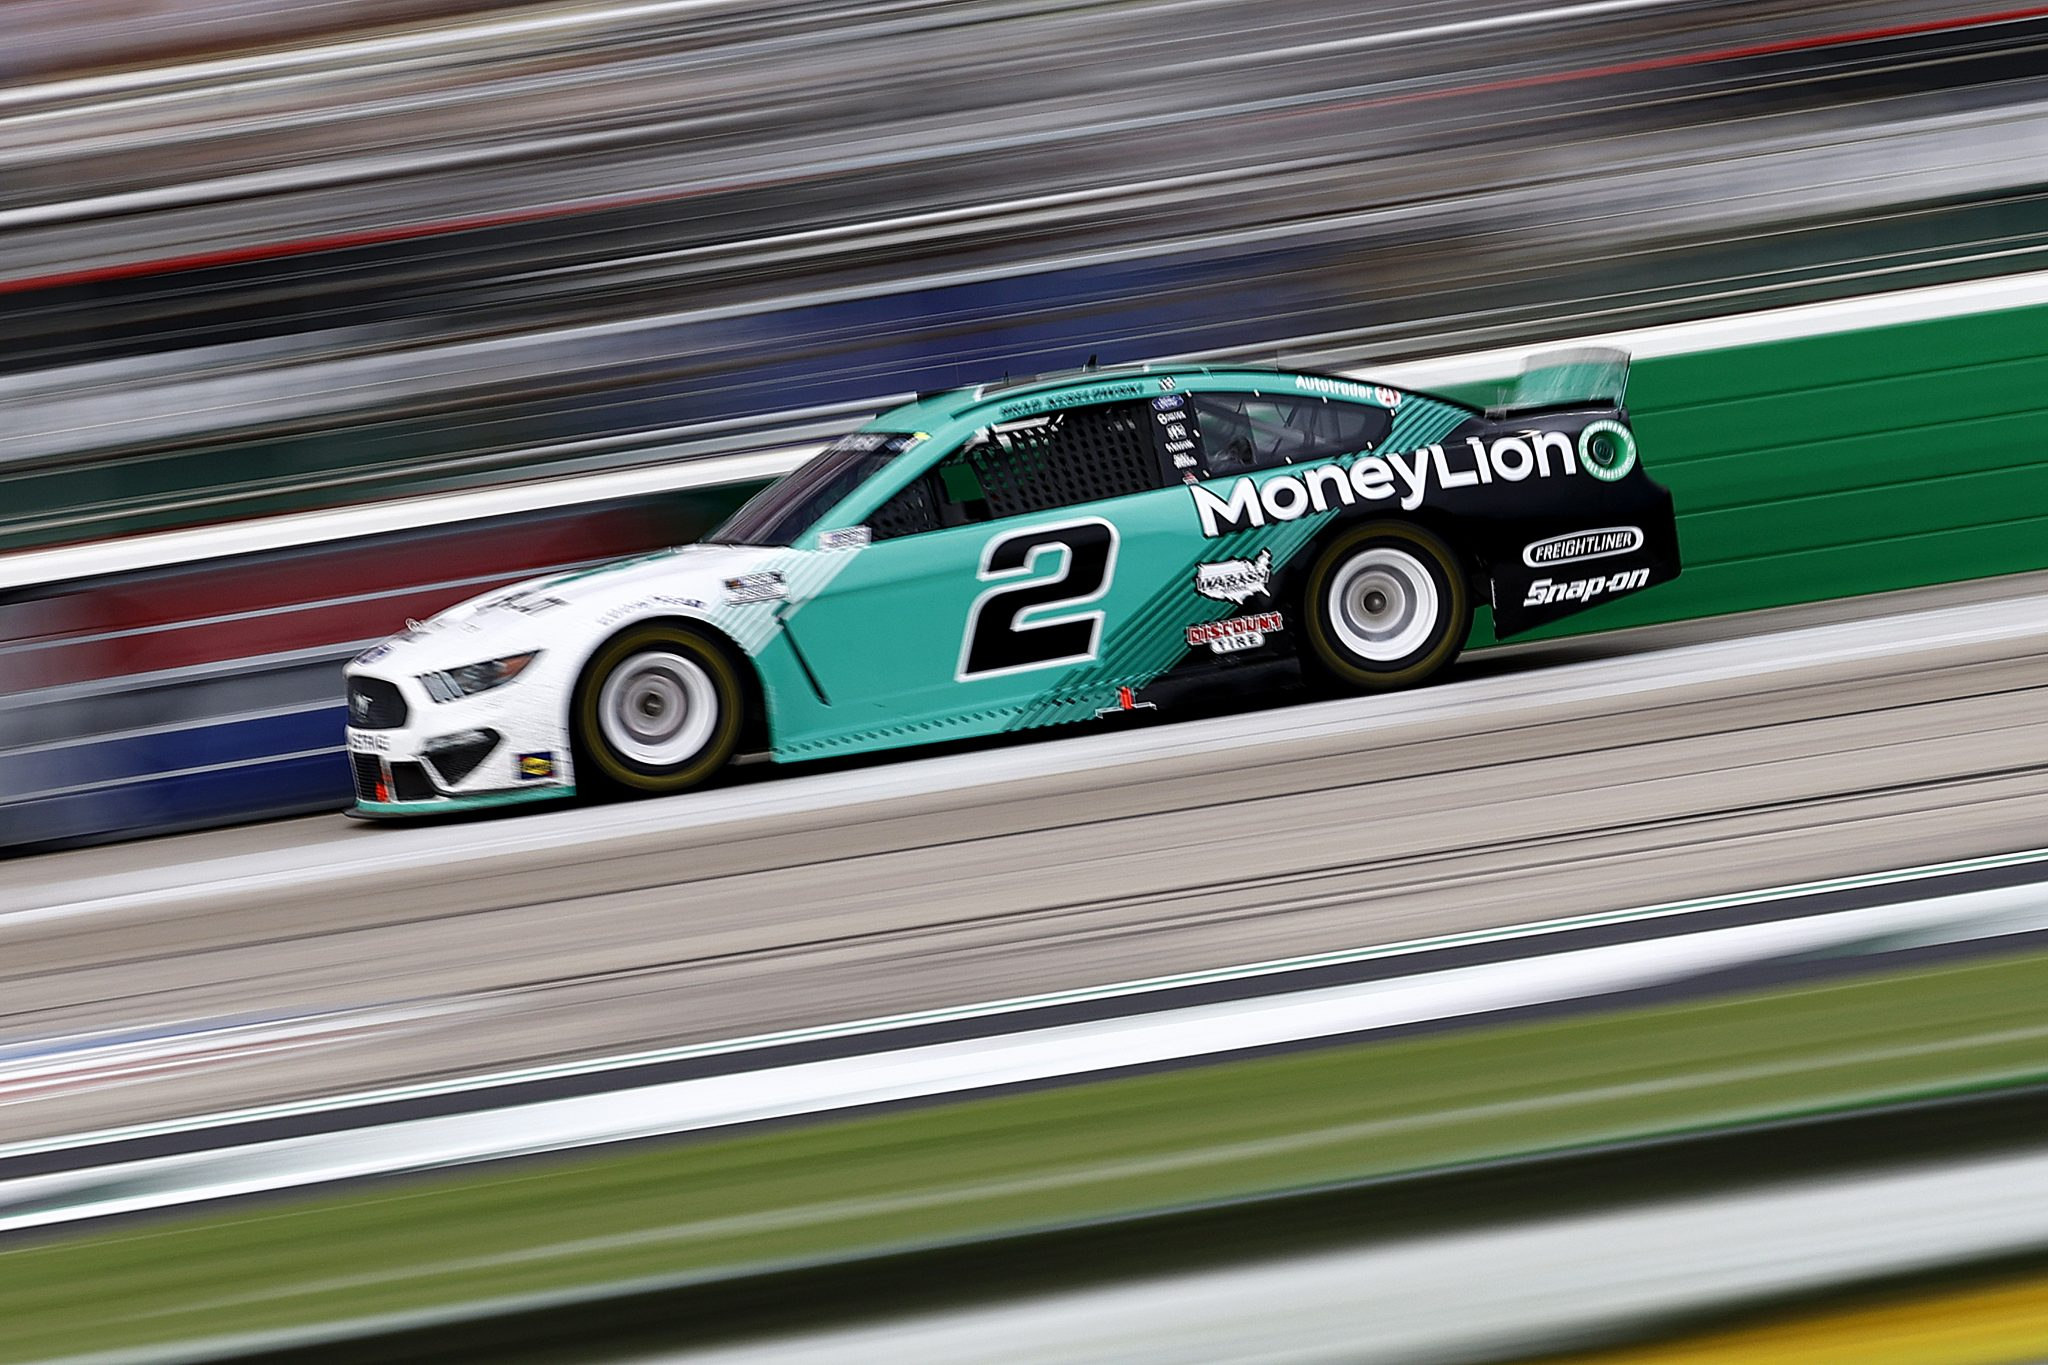 HAMPTON, GEORGIA - JULY 11: Brad Keselowski, driver of the #2 MoneyLion Ford, drives during the NASCAR Cup Series Quaker State 400 presented by Walmart at Atlanta Motor Speedway on July 11, 2021 in Hampton, Georgia. (Photo by Jared C. Tilton/Getty Images)   Getty Images